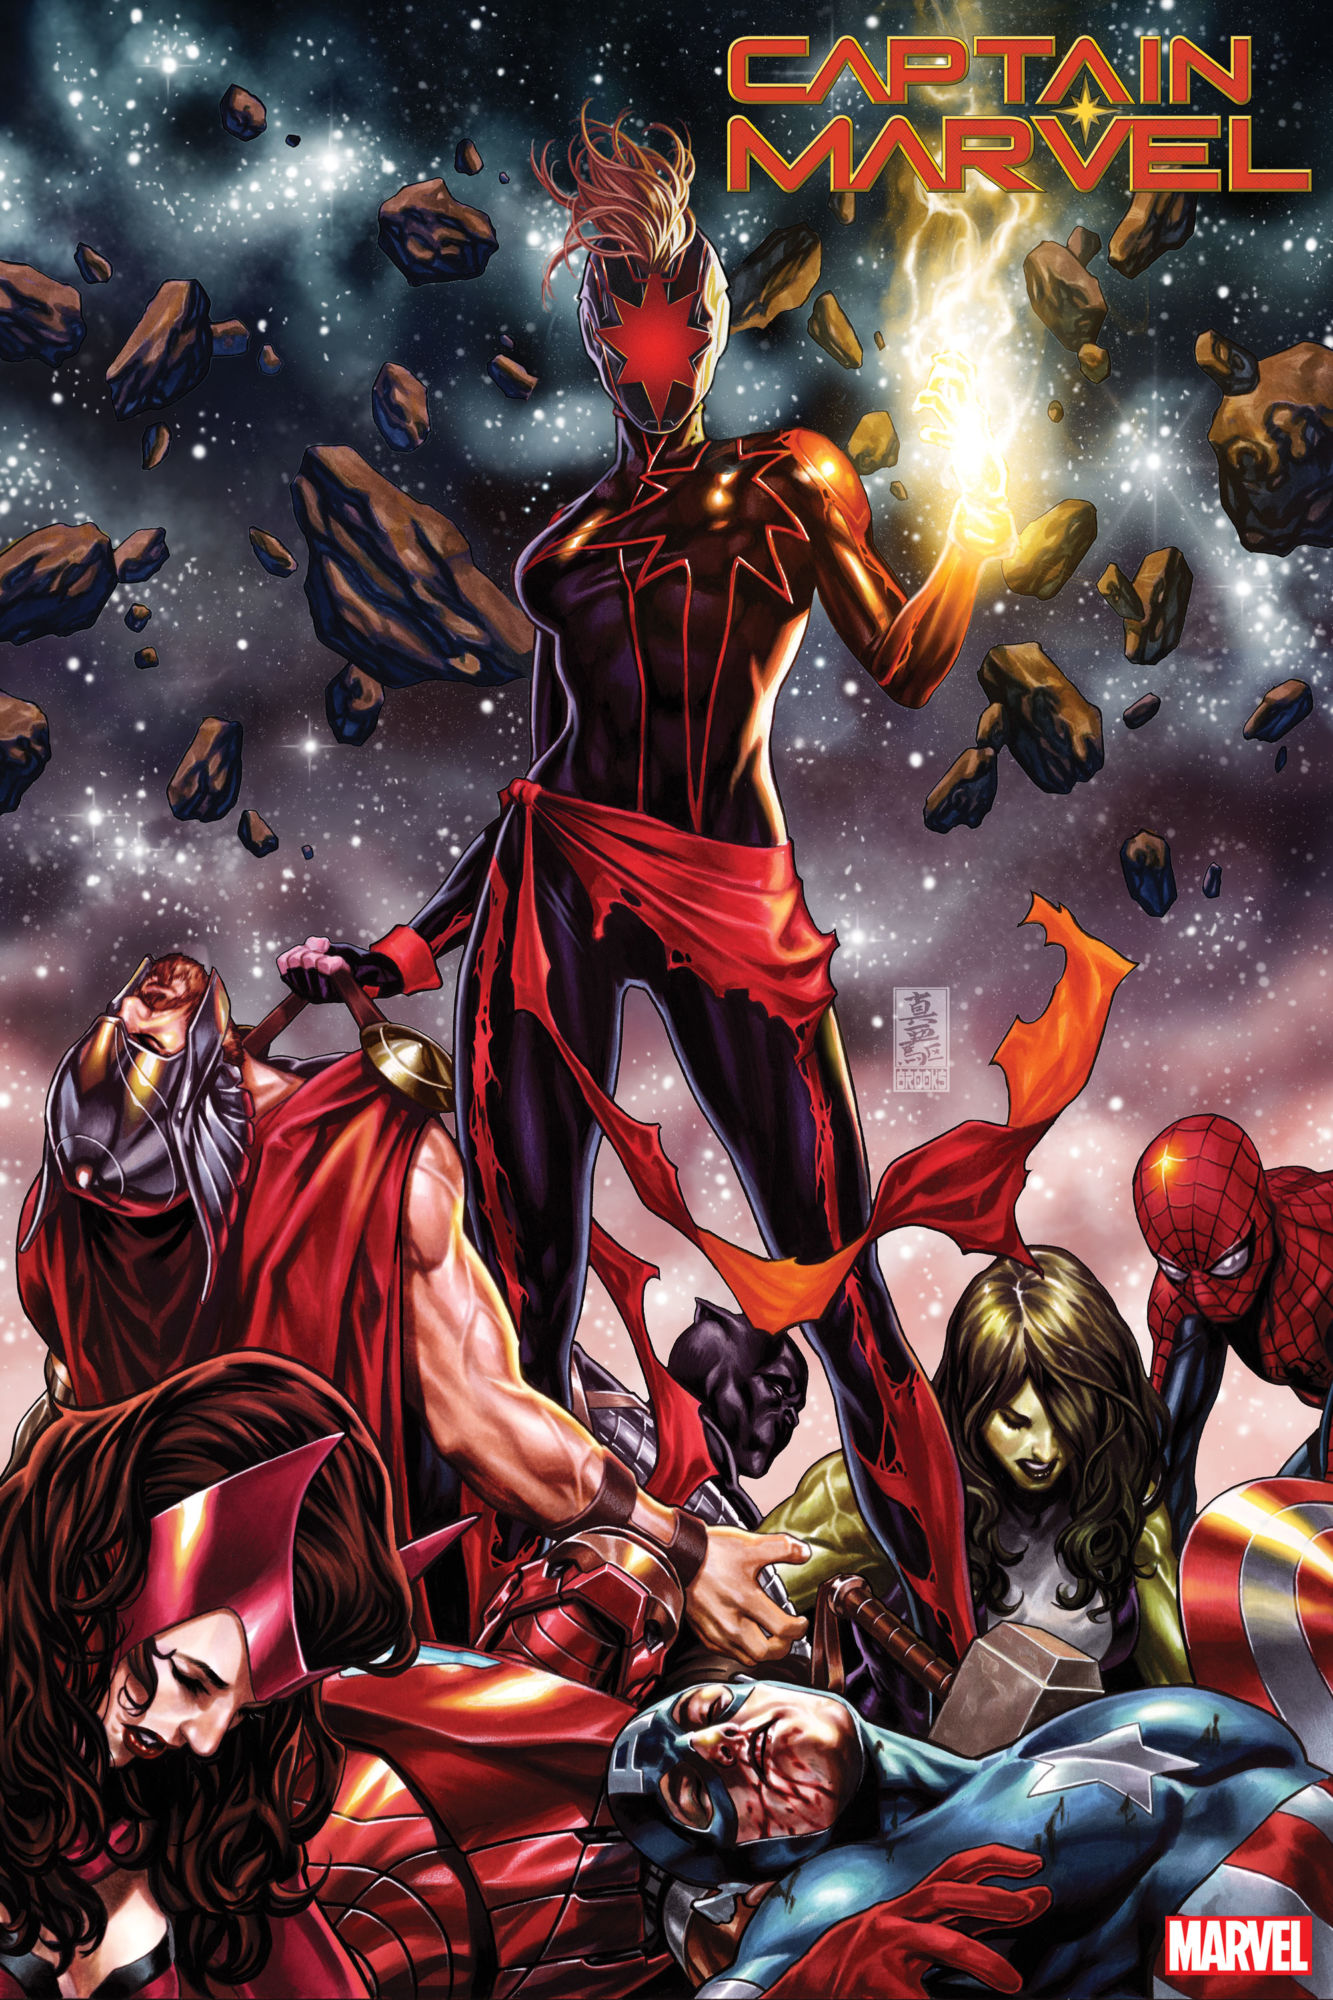 Which Avenger Will Captain Marvel Kill Before the End of The Year?